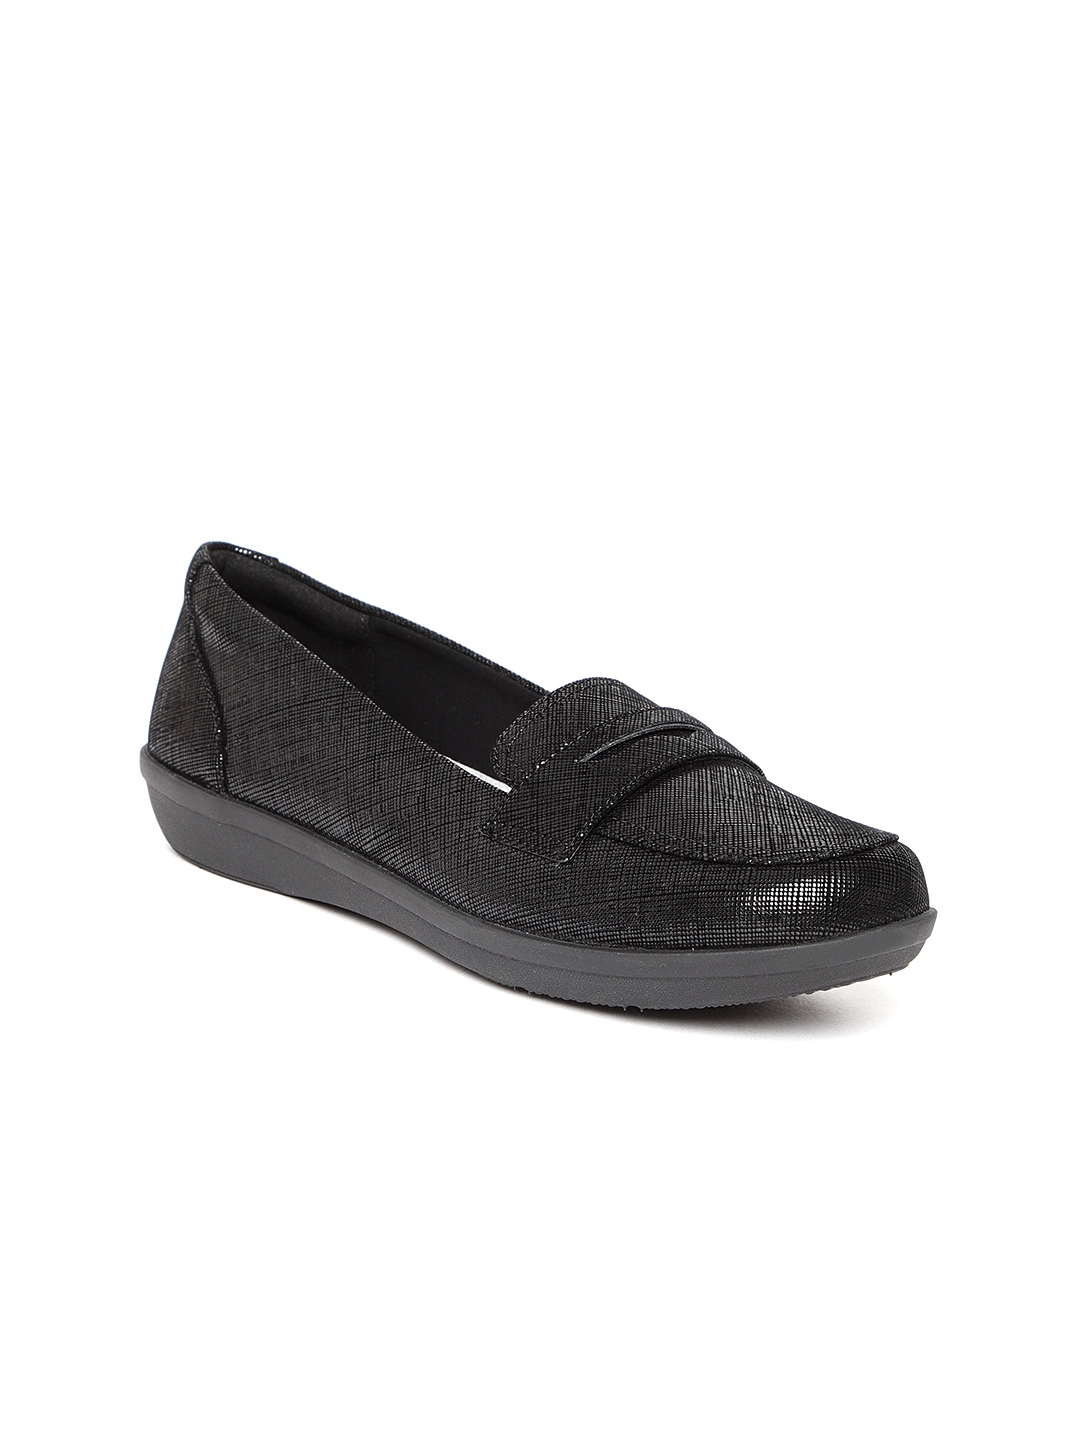 ed5b8bd6003 Buy Clarks Women Black Penny Loafers - Casual Shoes for Women ...